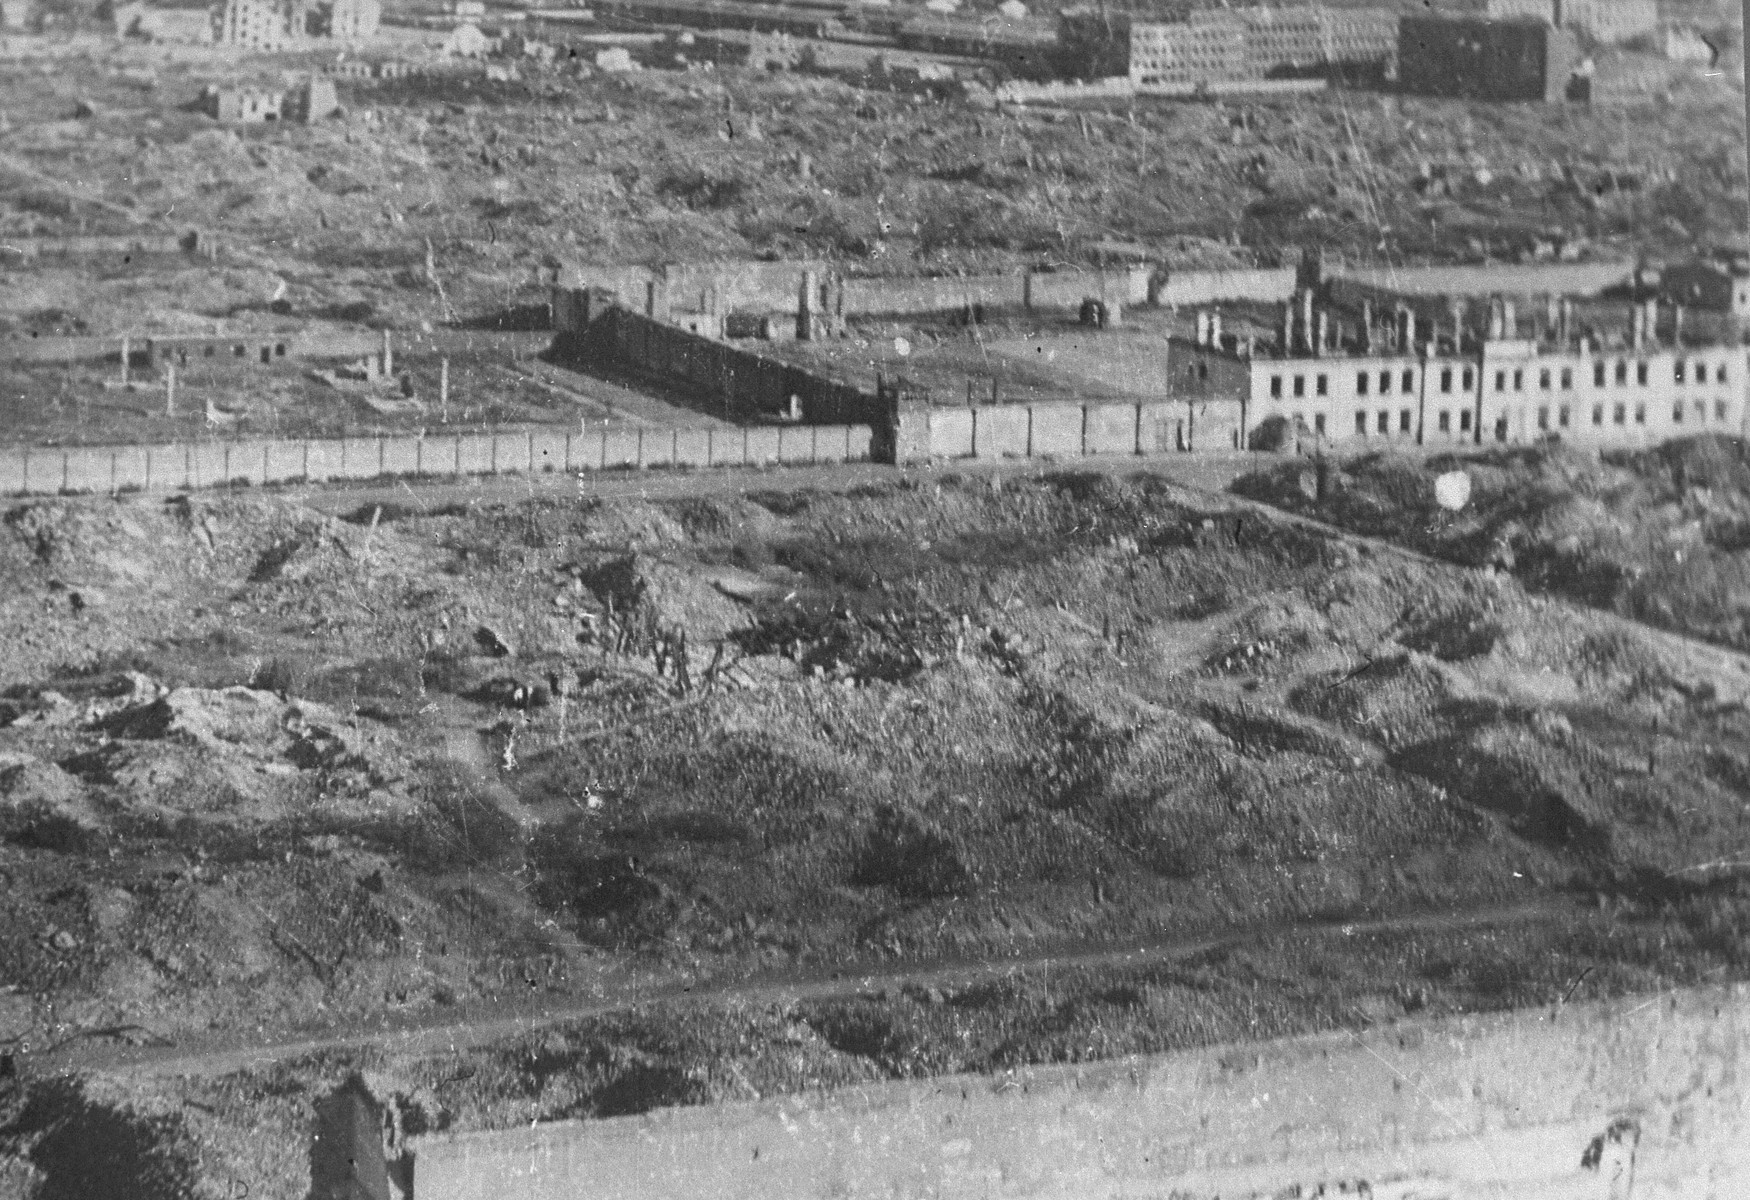 View of the ruins of the Warsaw ghetto.    Pictured in the foreground are part of the wall of Pawiak prison and ruins of buildings and warehouses on Stawki Street.